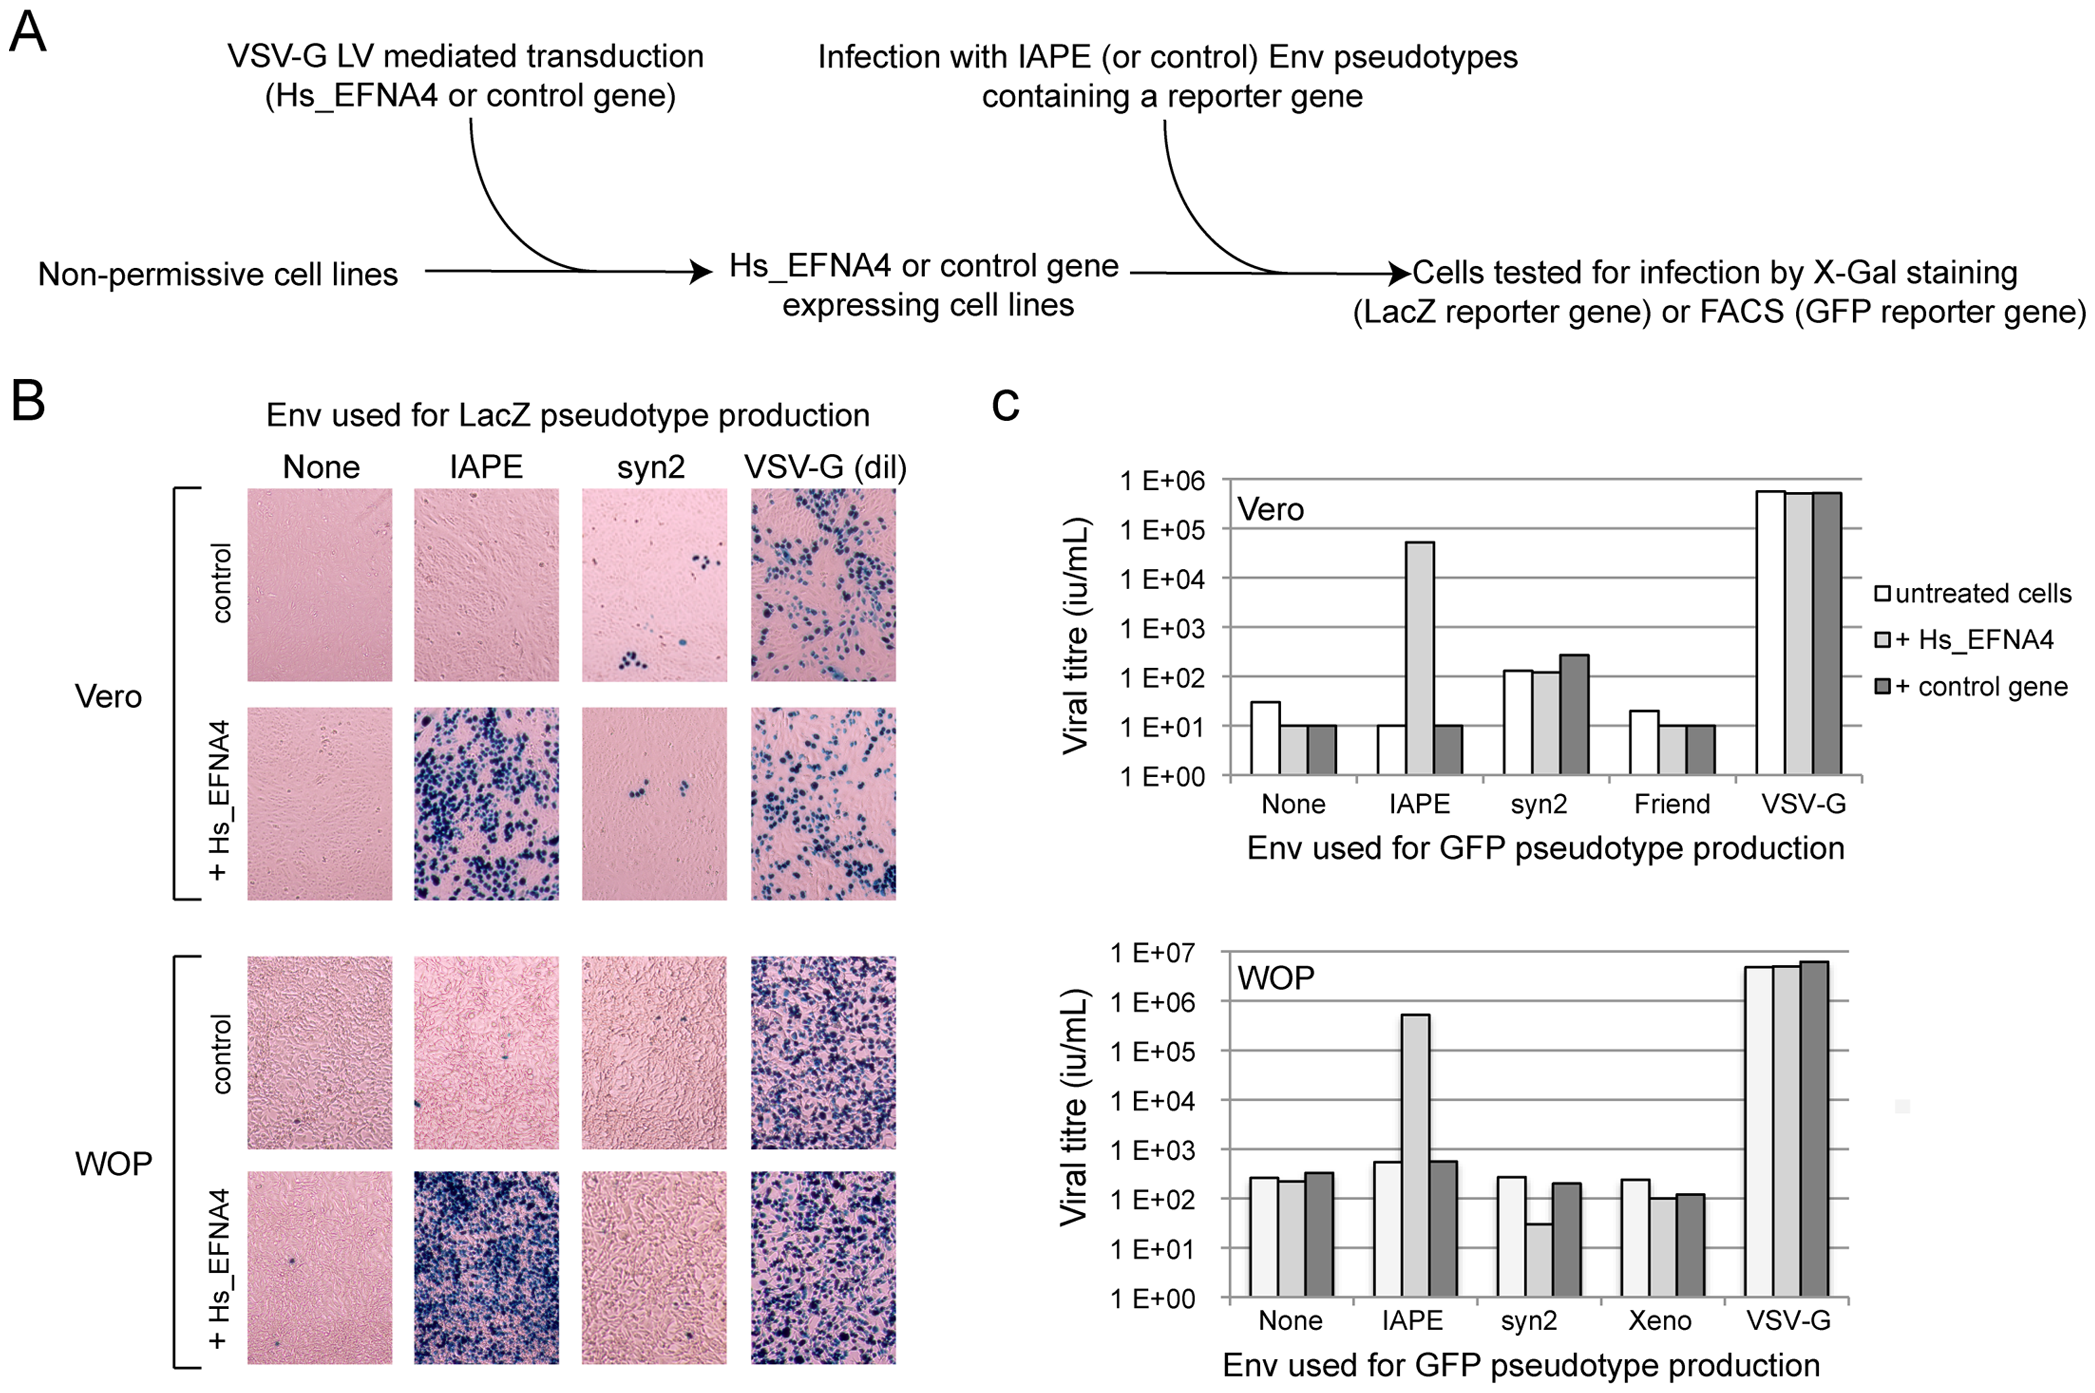 Expression of EFNA4 is sufficient to render cells susceptible to infection by IAPE Env pseudotypes.